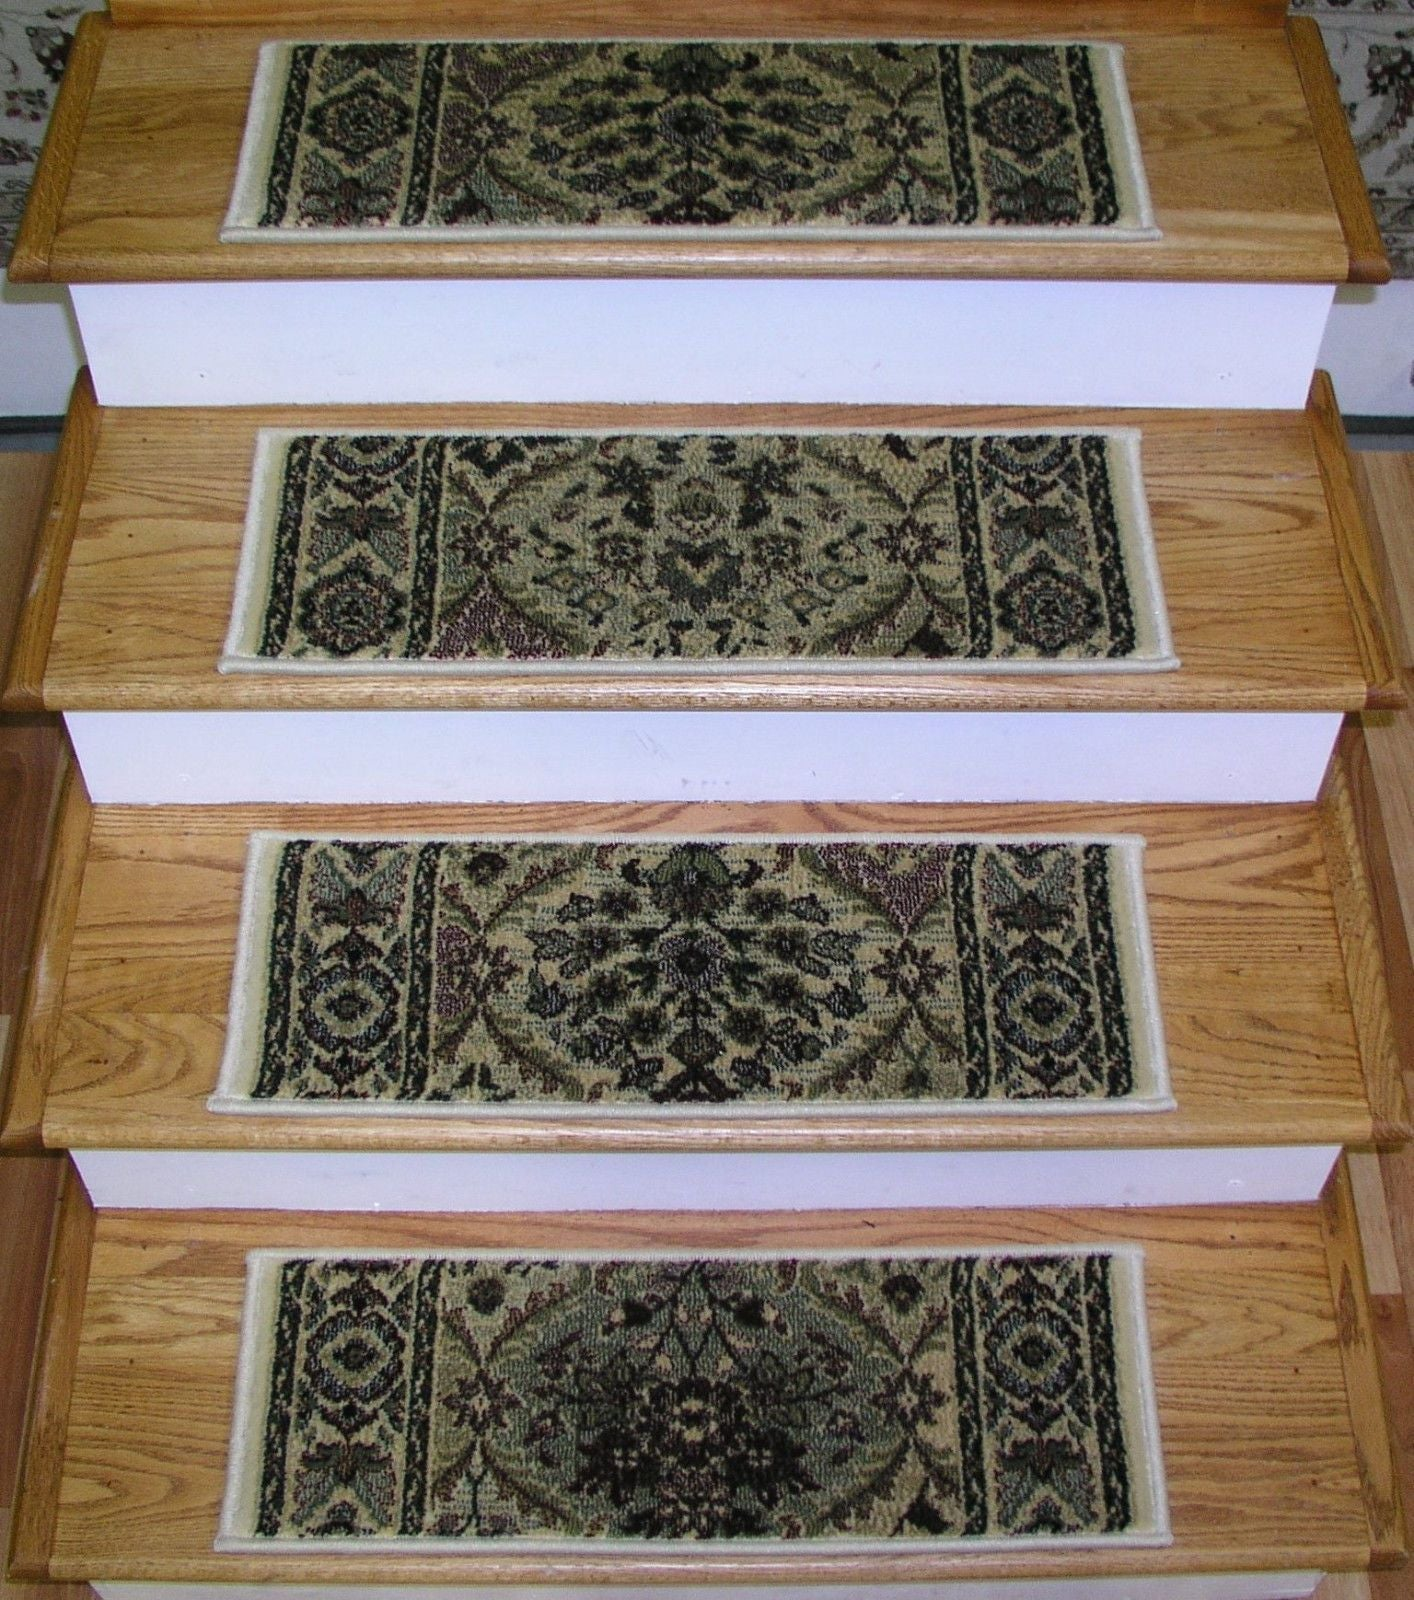 Rizzy Stair Treads Stair Tread Ivory Panel 26in x 9in Set of 13 With Non Slip Pads